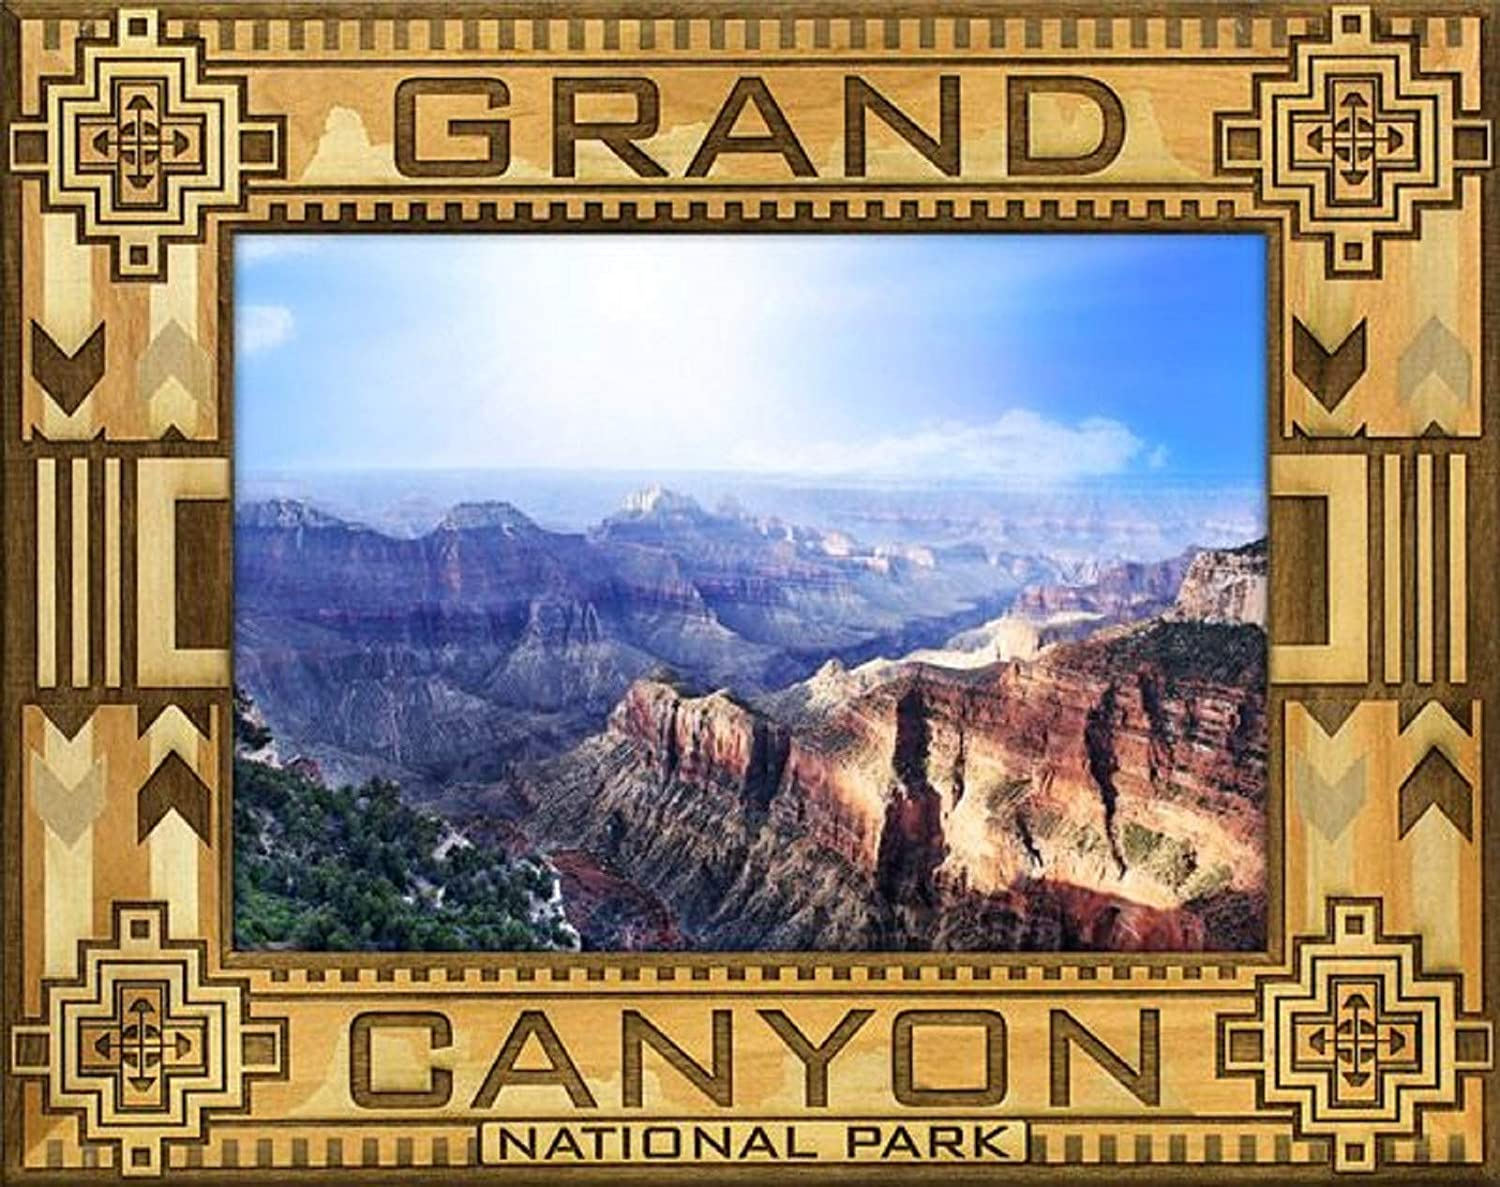 5 x 7 Grand Canyon National Park with Border Laser Engraved Wood Picture Frame